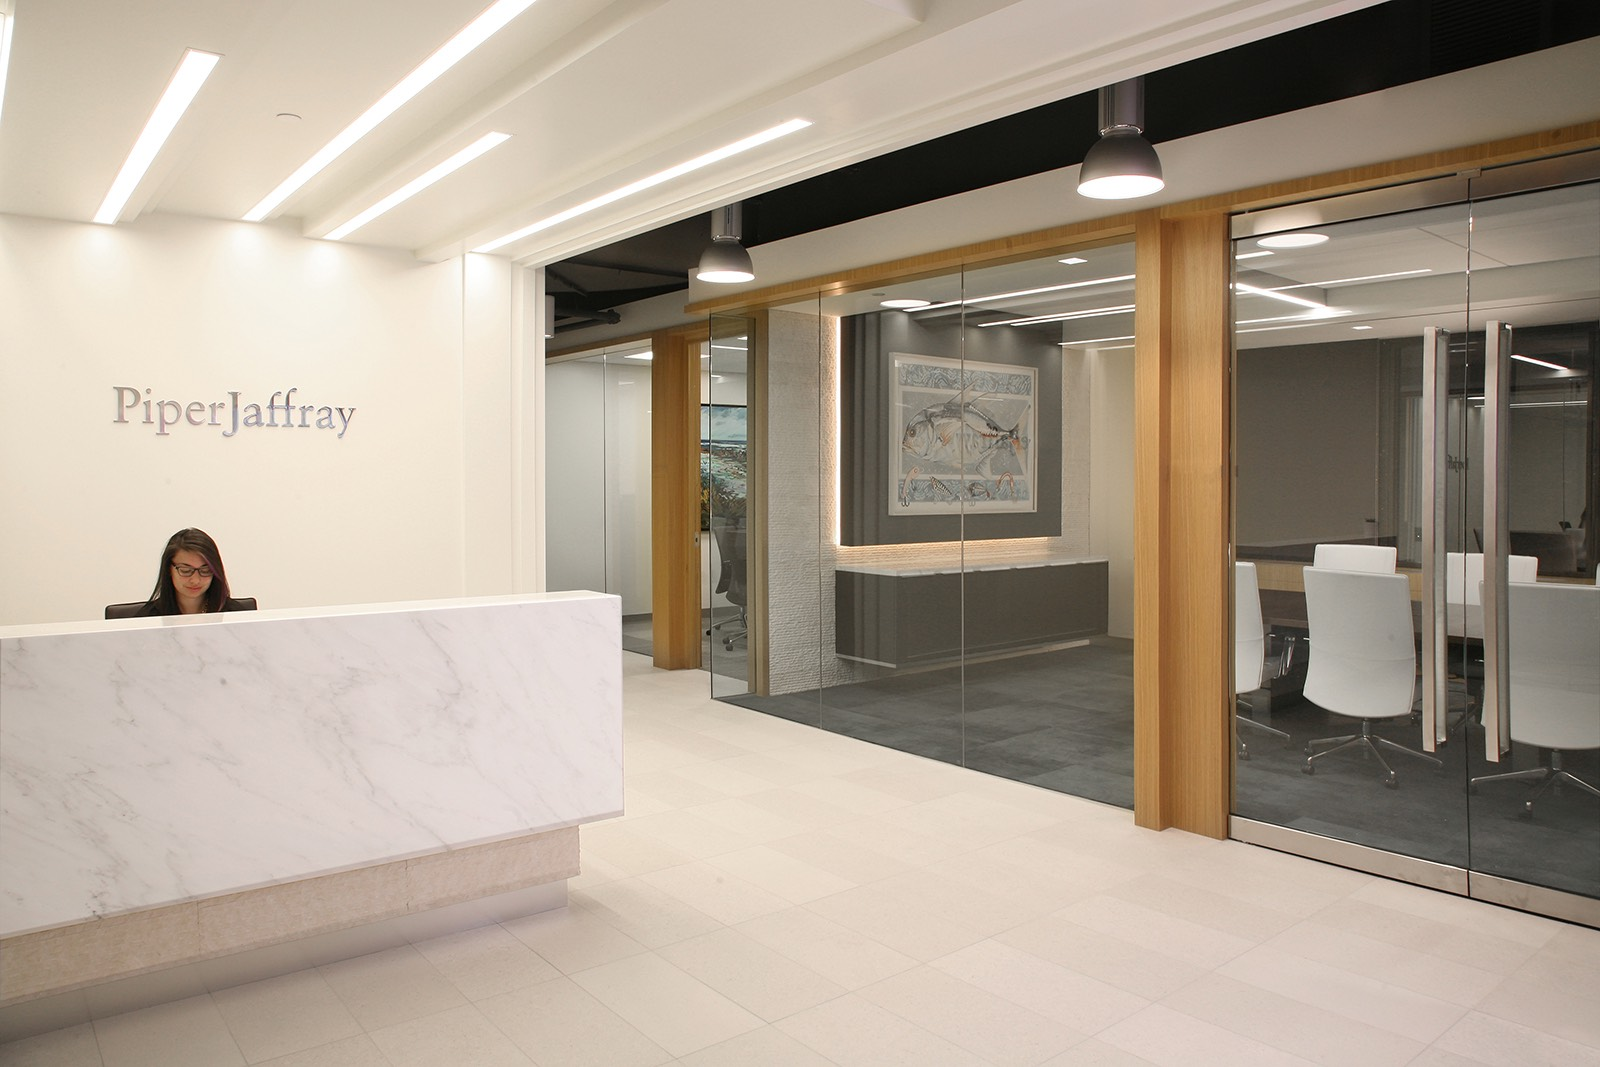 Piper-Jaffray-office-1